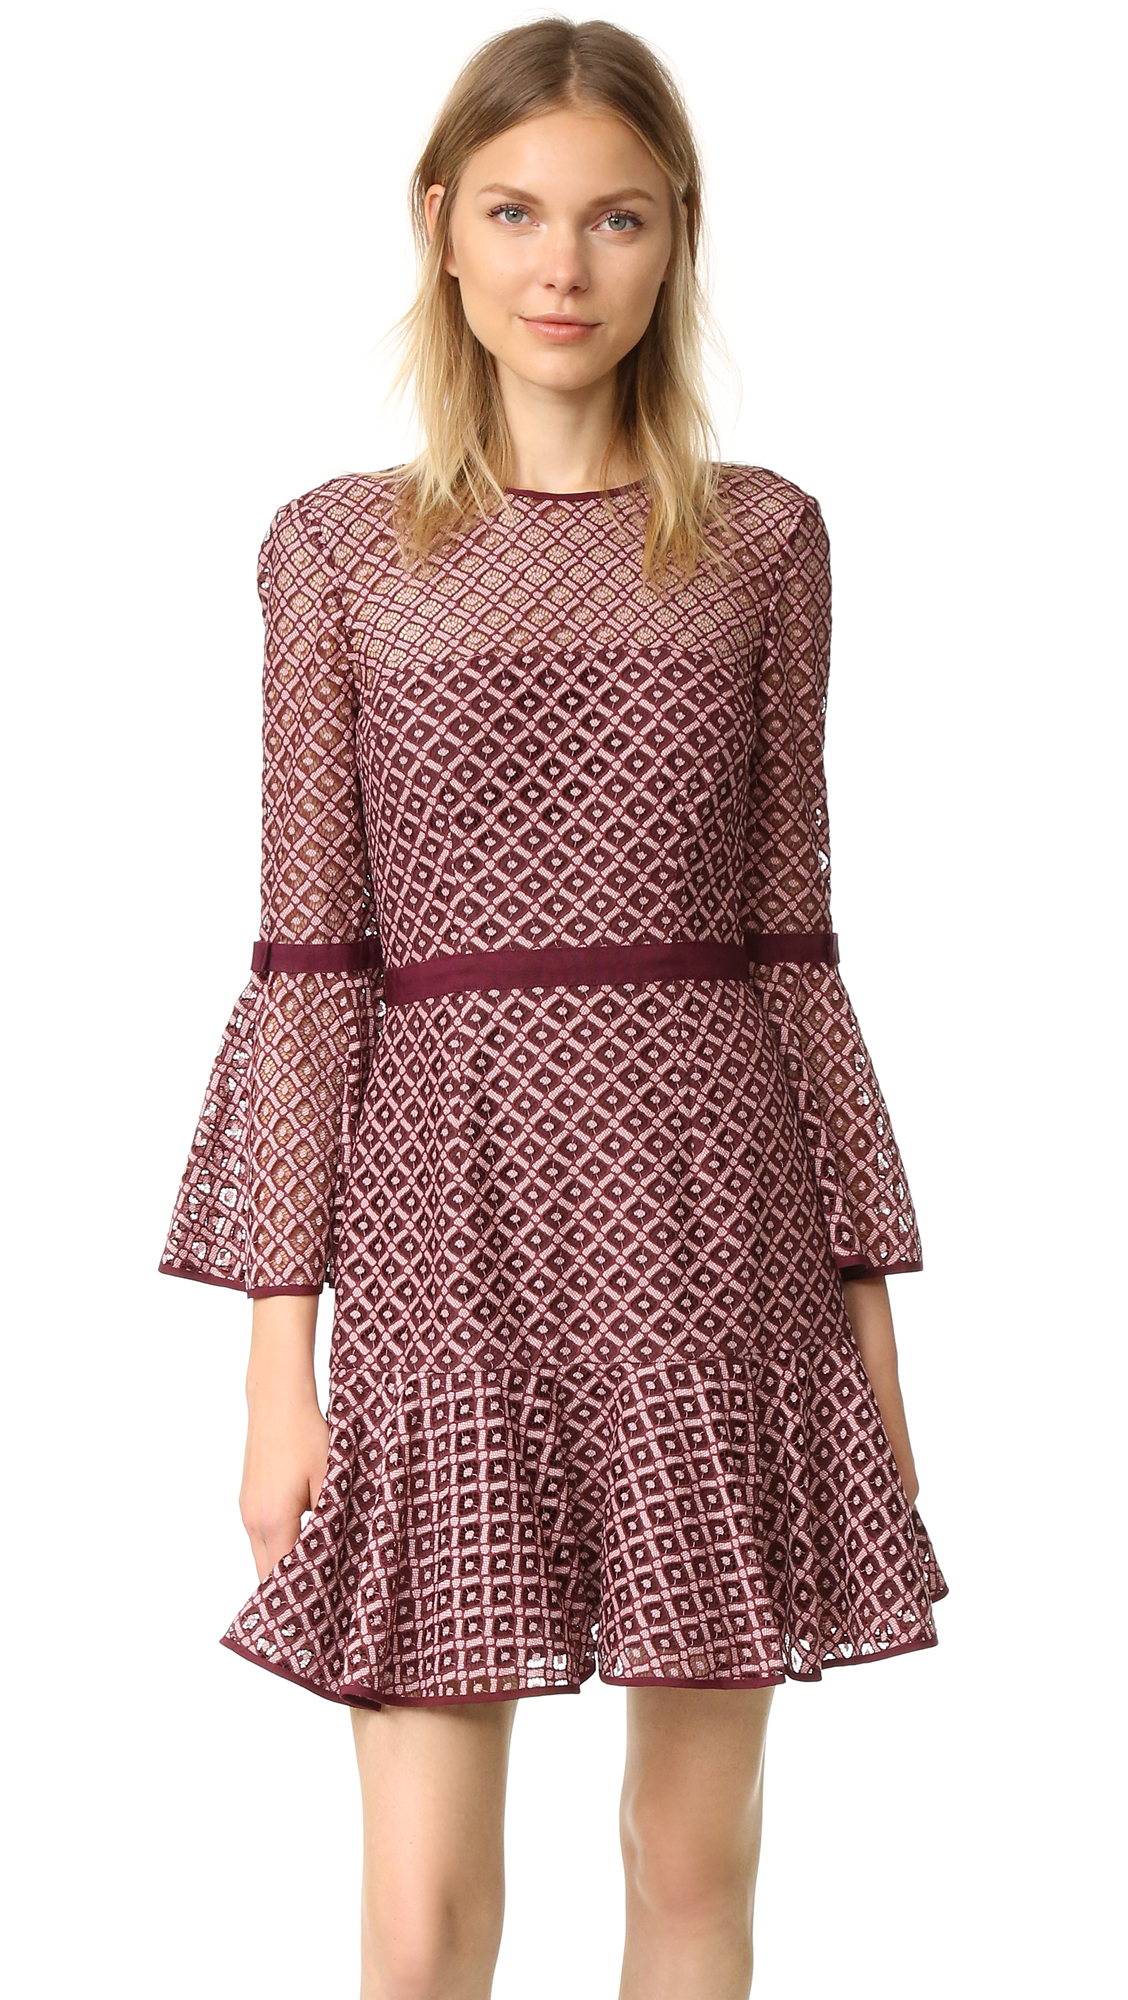 Cinq A Sept Cosette Lace Dress - Mulberry